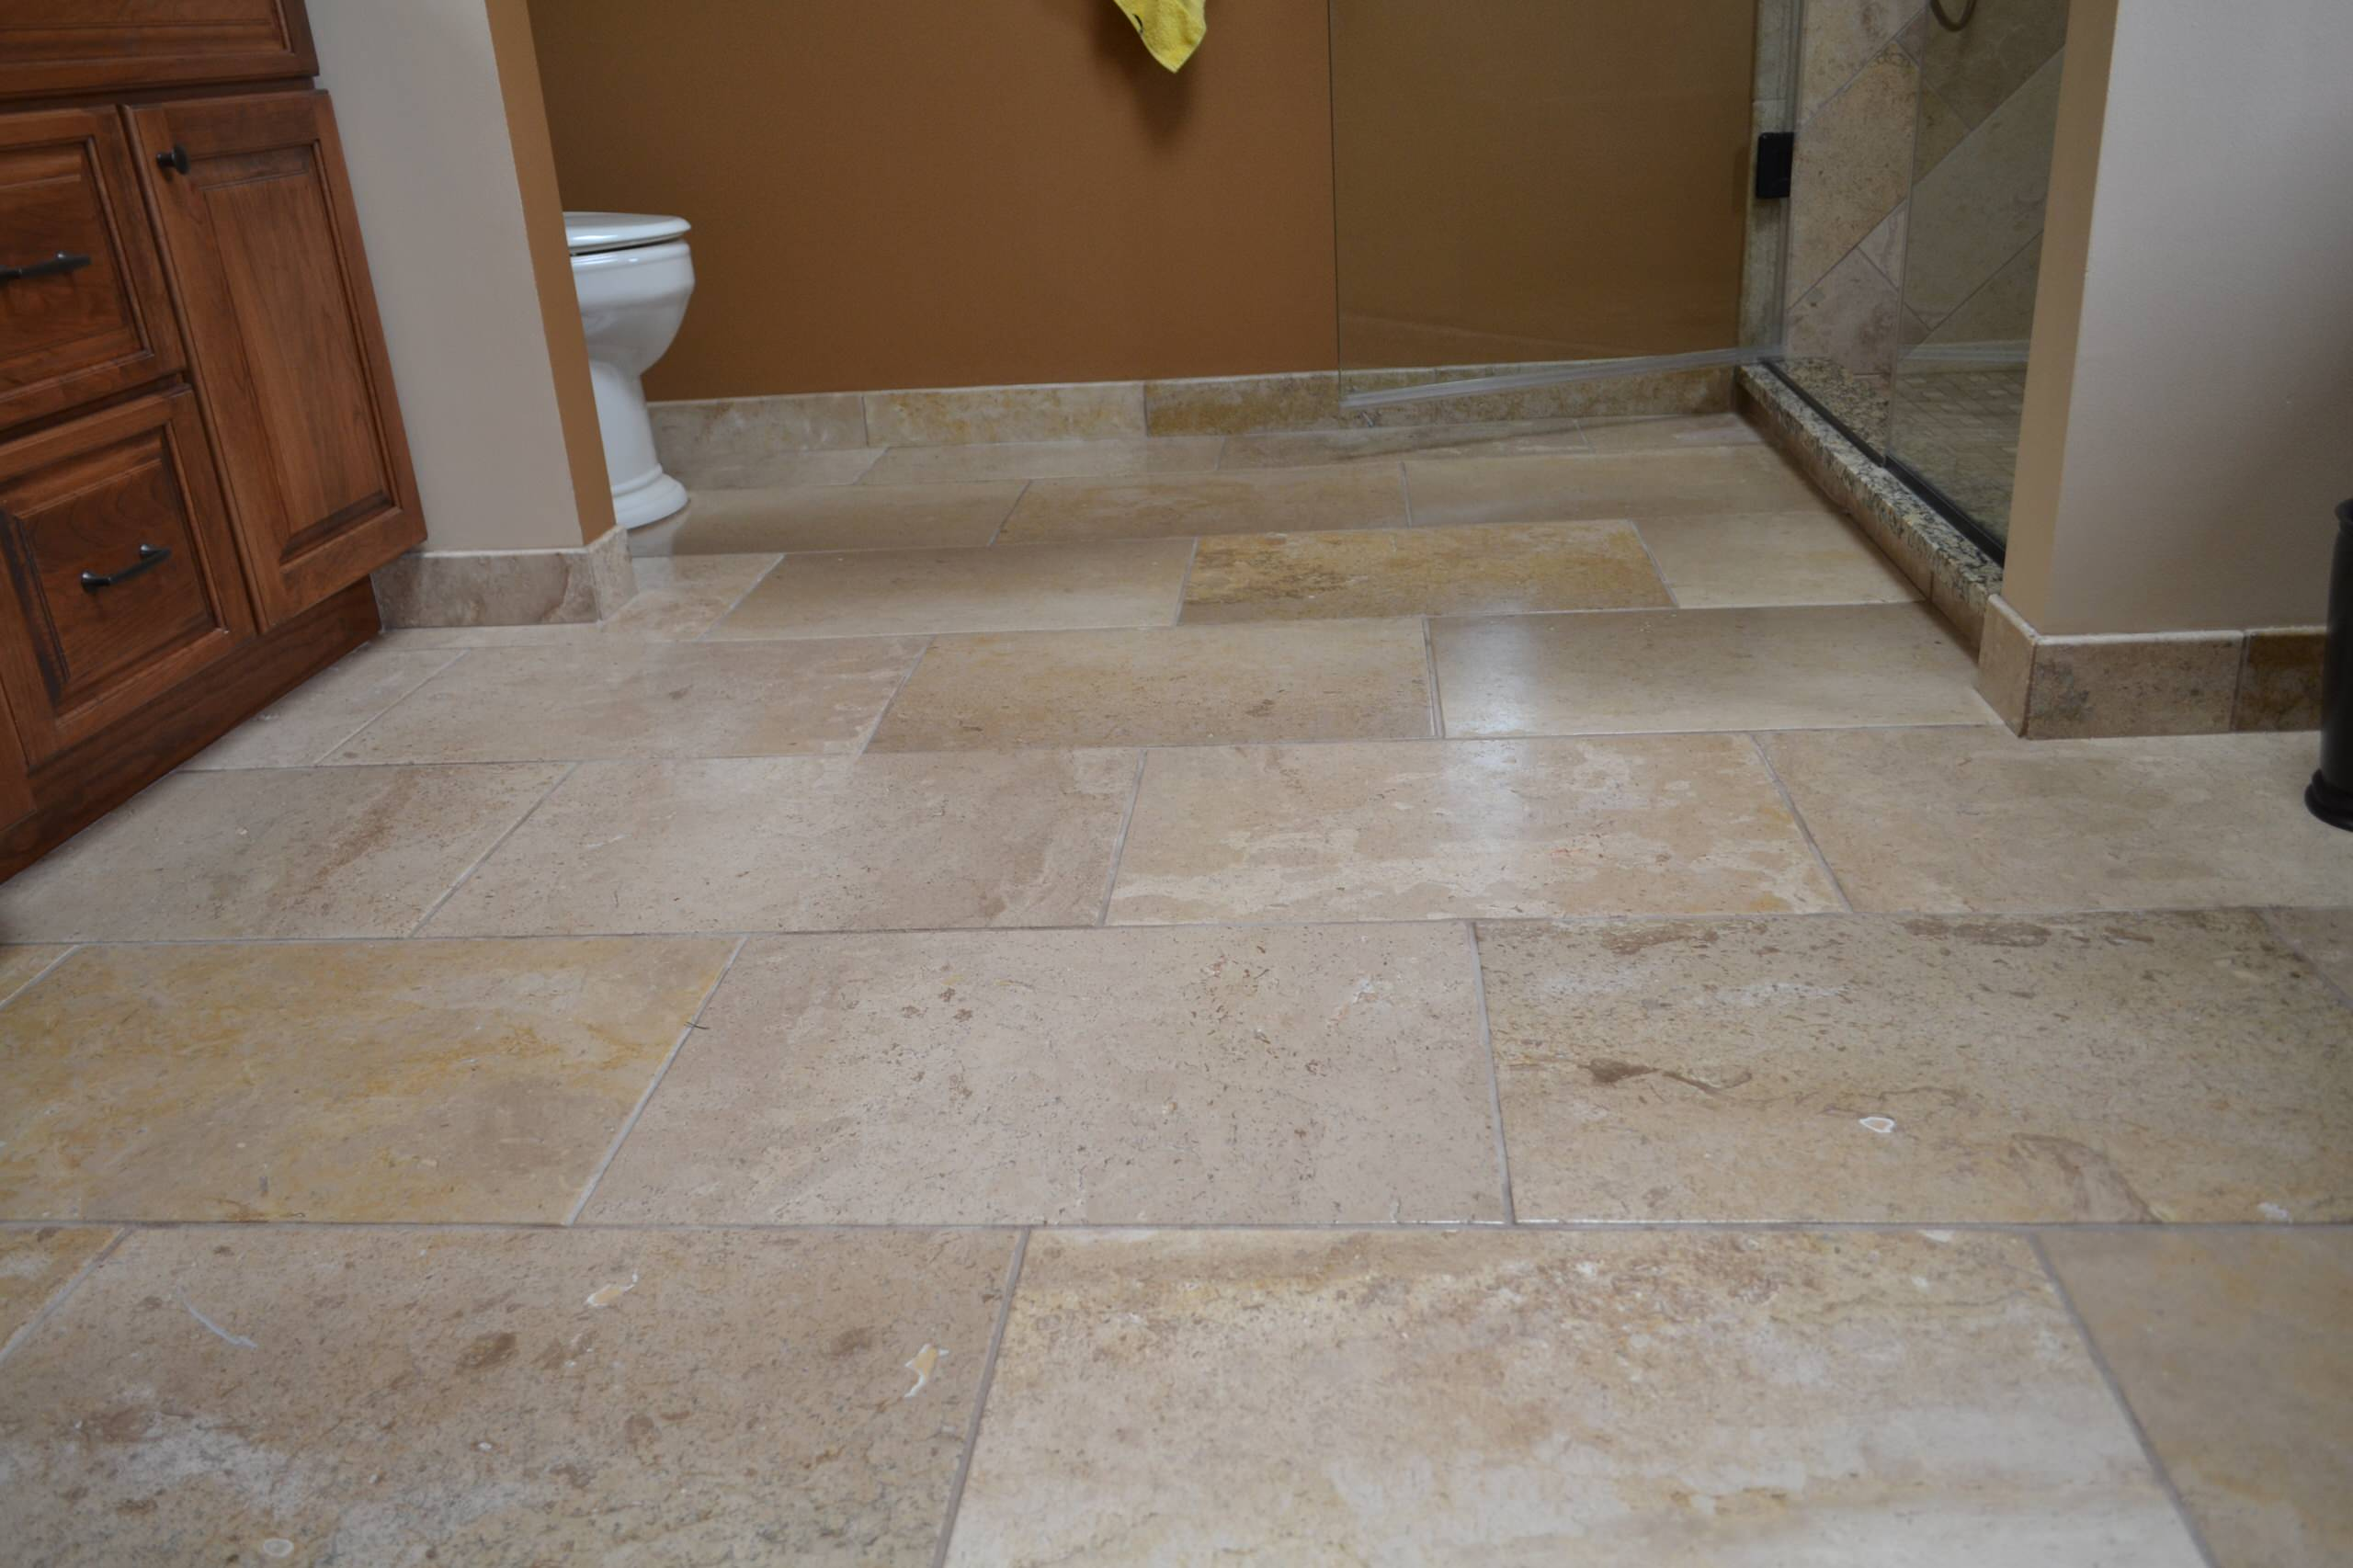 Travertine tile baseboard